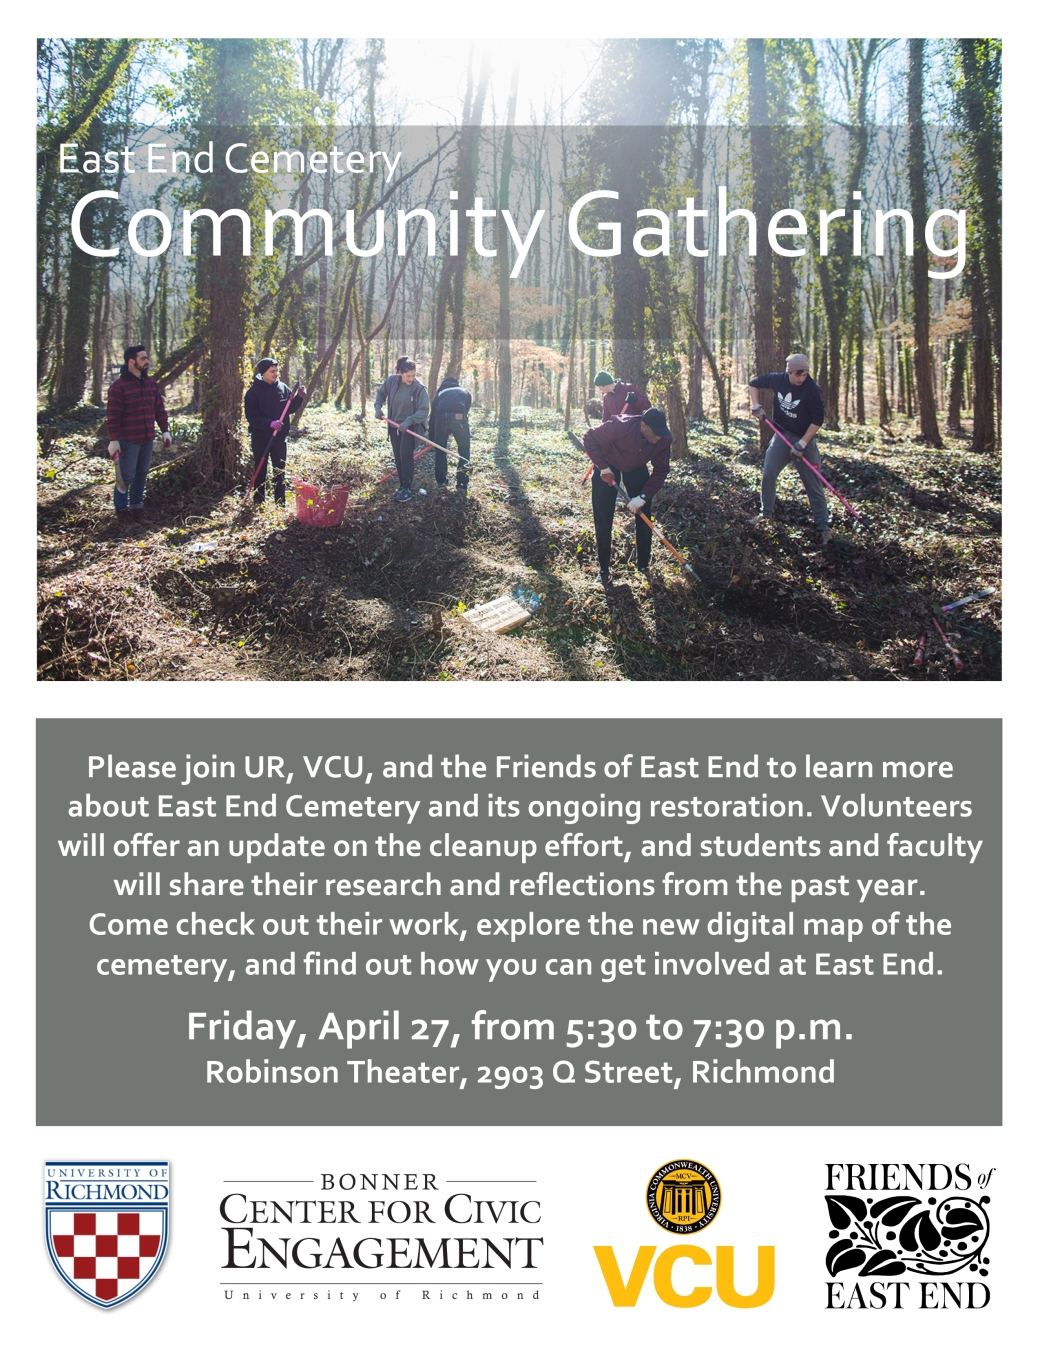 Microsoft Word - EE_Collab_Community_Gathering_20180427.docx